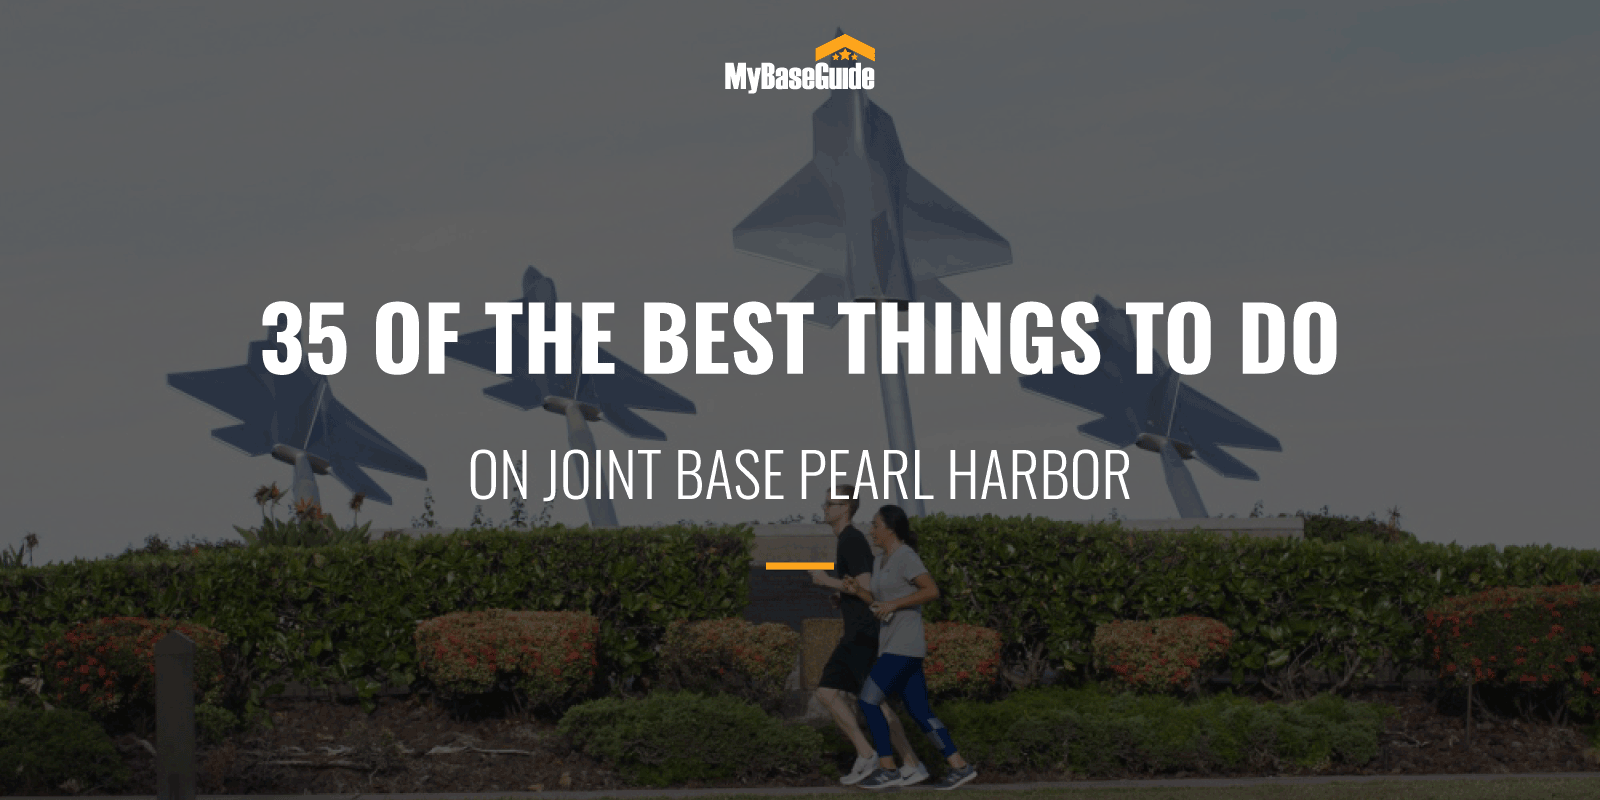 Best Things to Do Near Joint Base Pearl Harbor